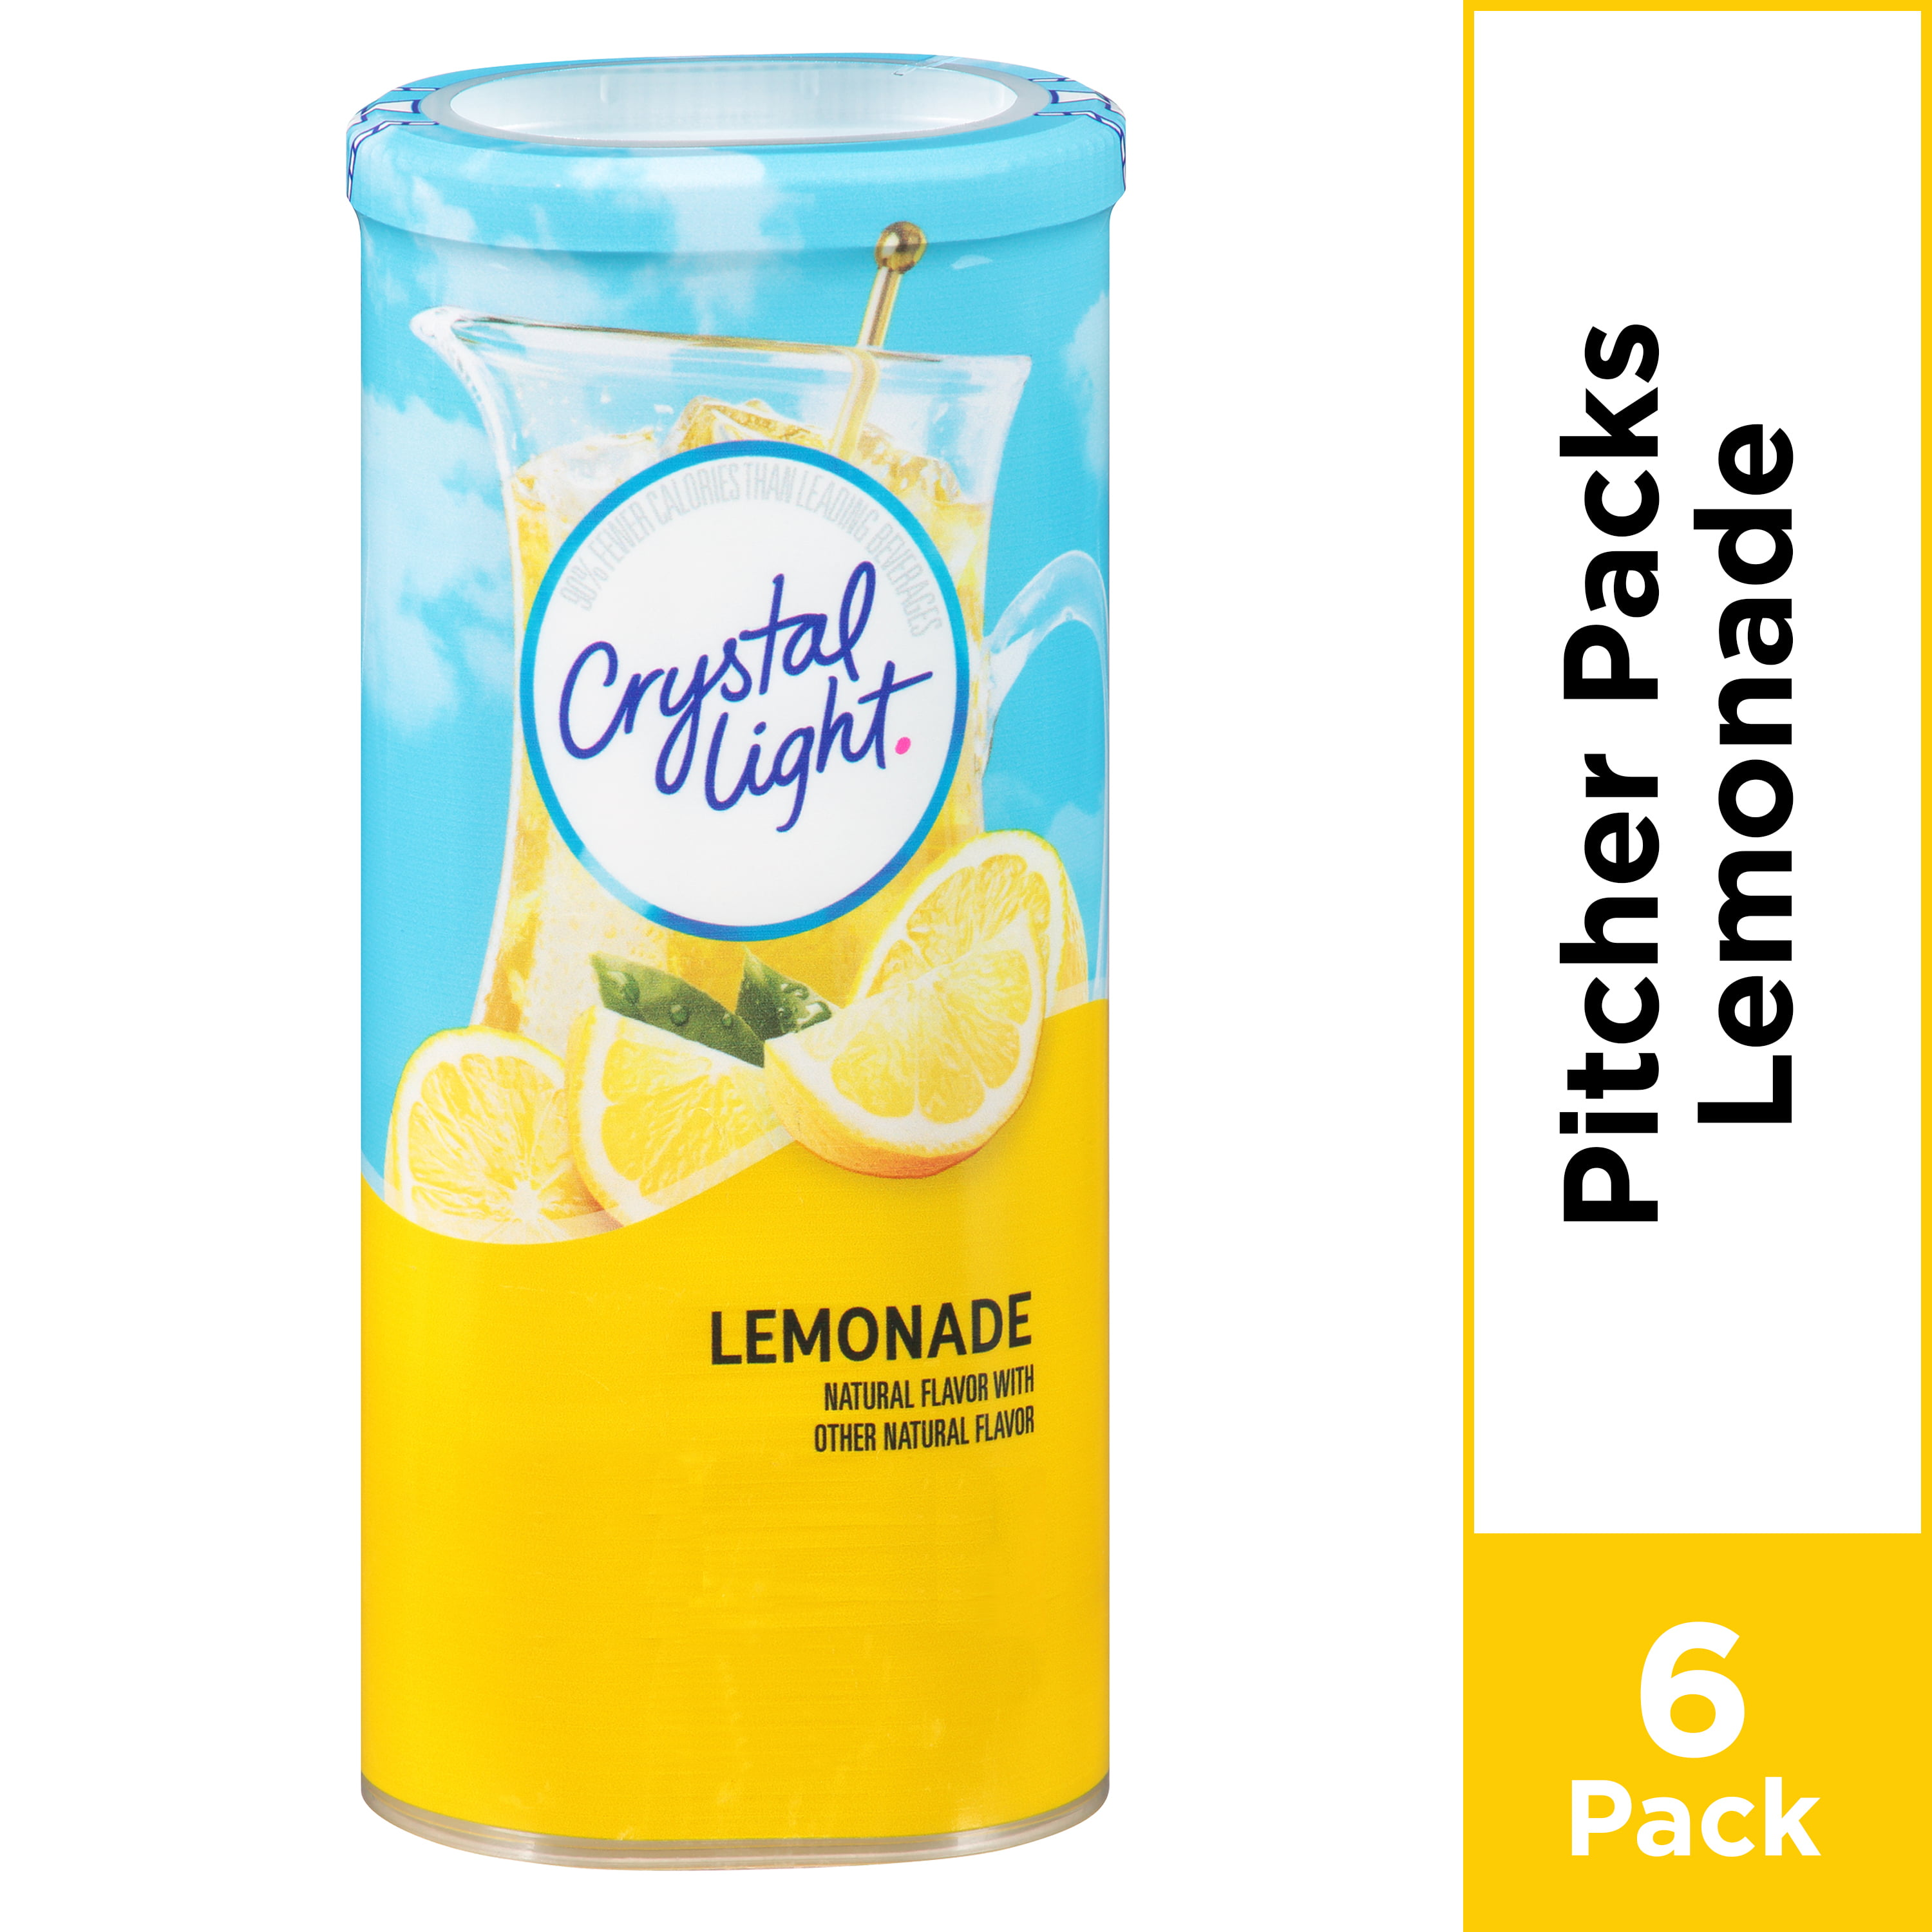 Crystal Light Lemonade Powdered Drink Mix Caffeine Free 3 2 Oz